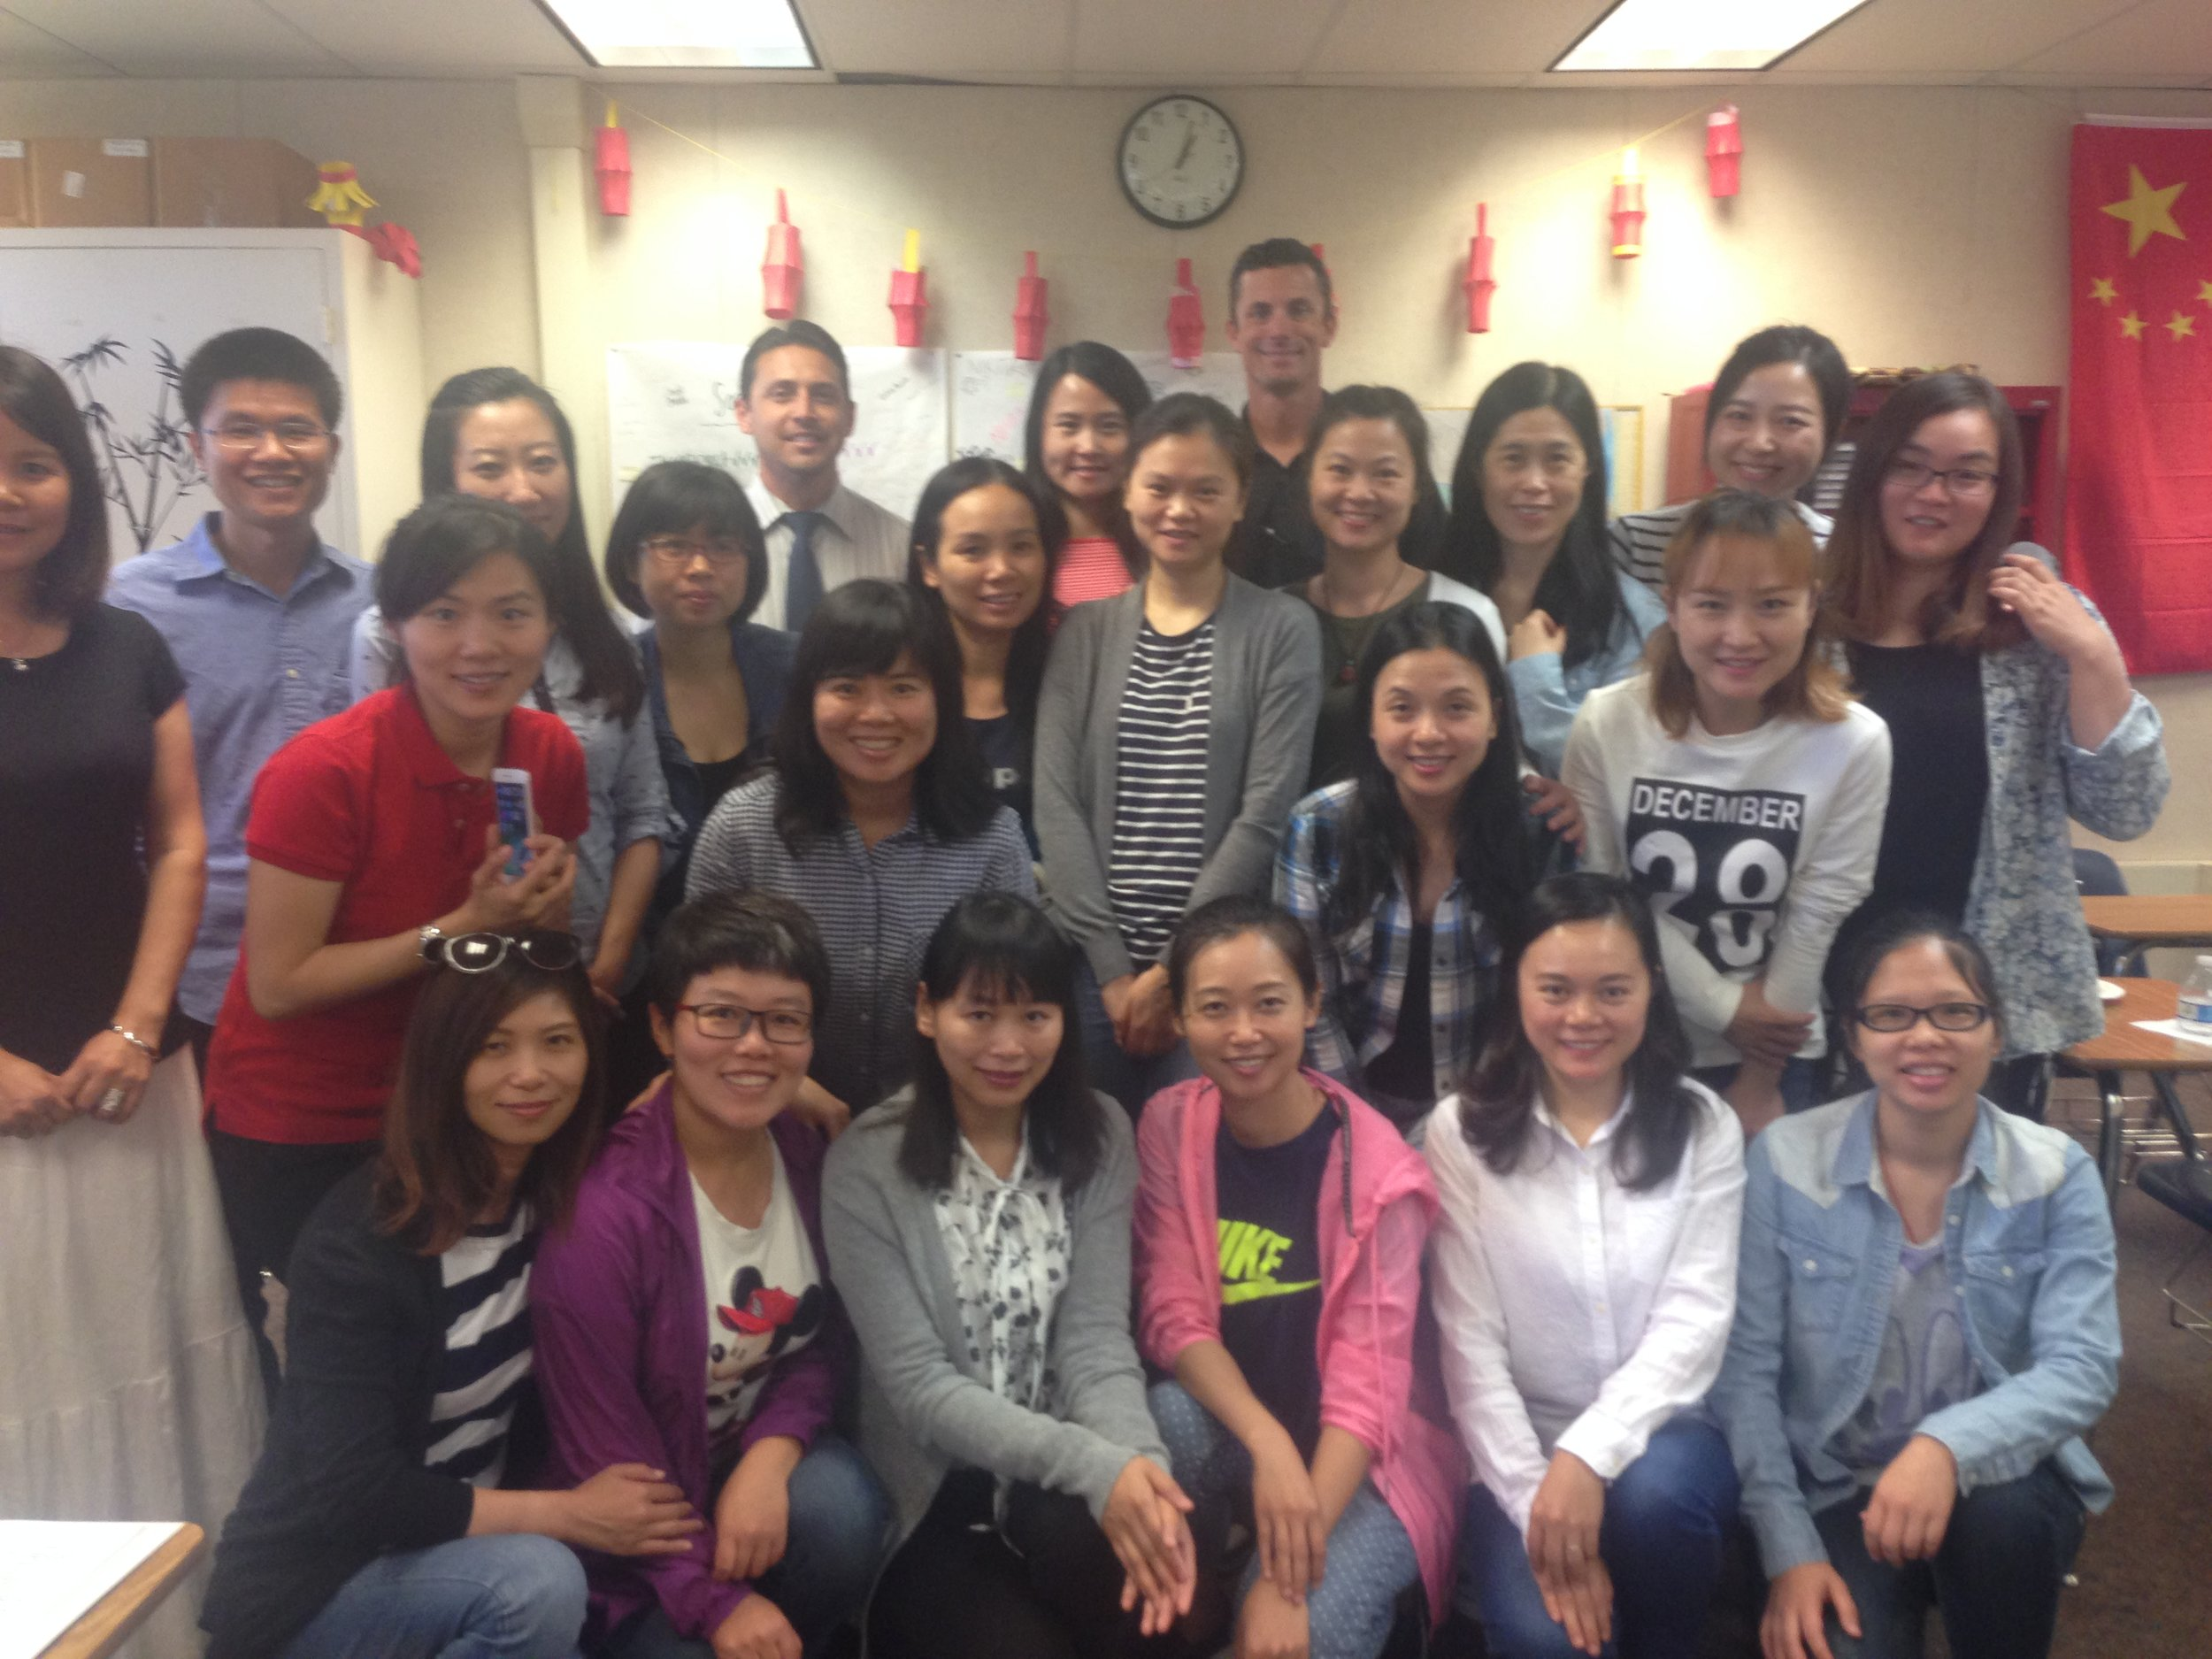 Twenty administrators from guanxi china participated in FIRST global Ambassadors program with a visit and lunch at Savanna High School in the Anaheim Union High School District followed by a presentation by Superintendent mike Matsuda.